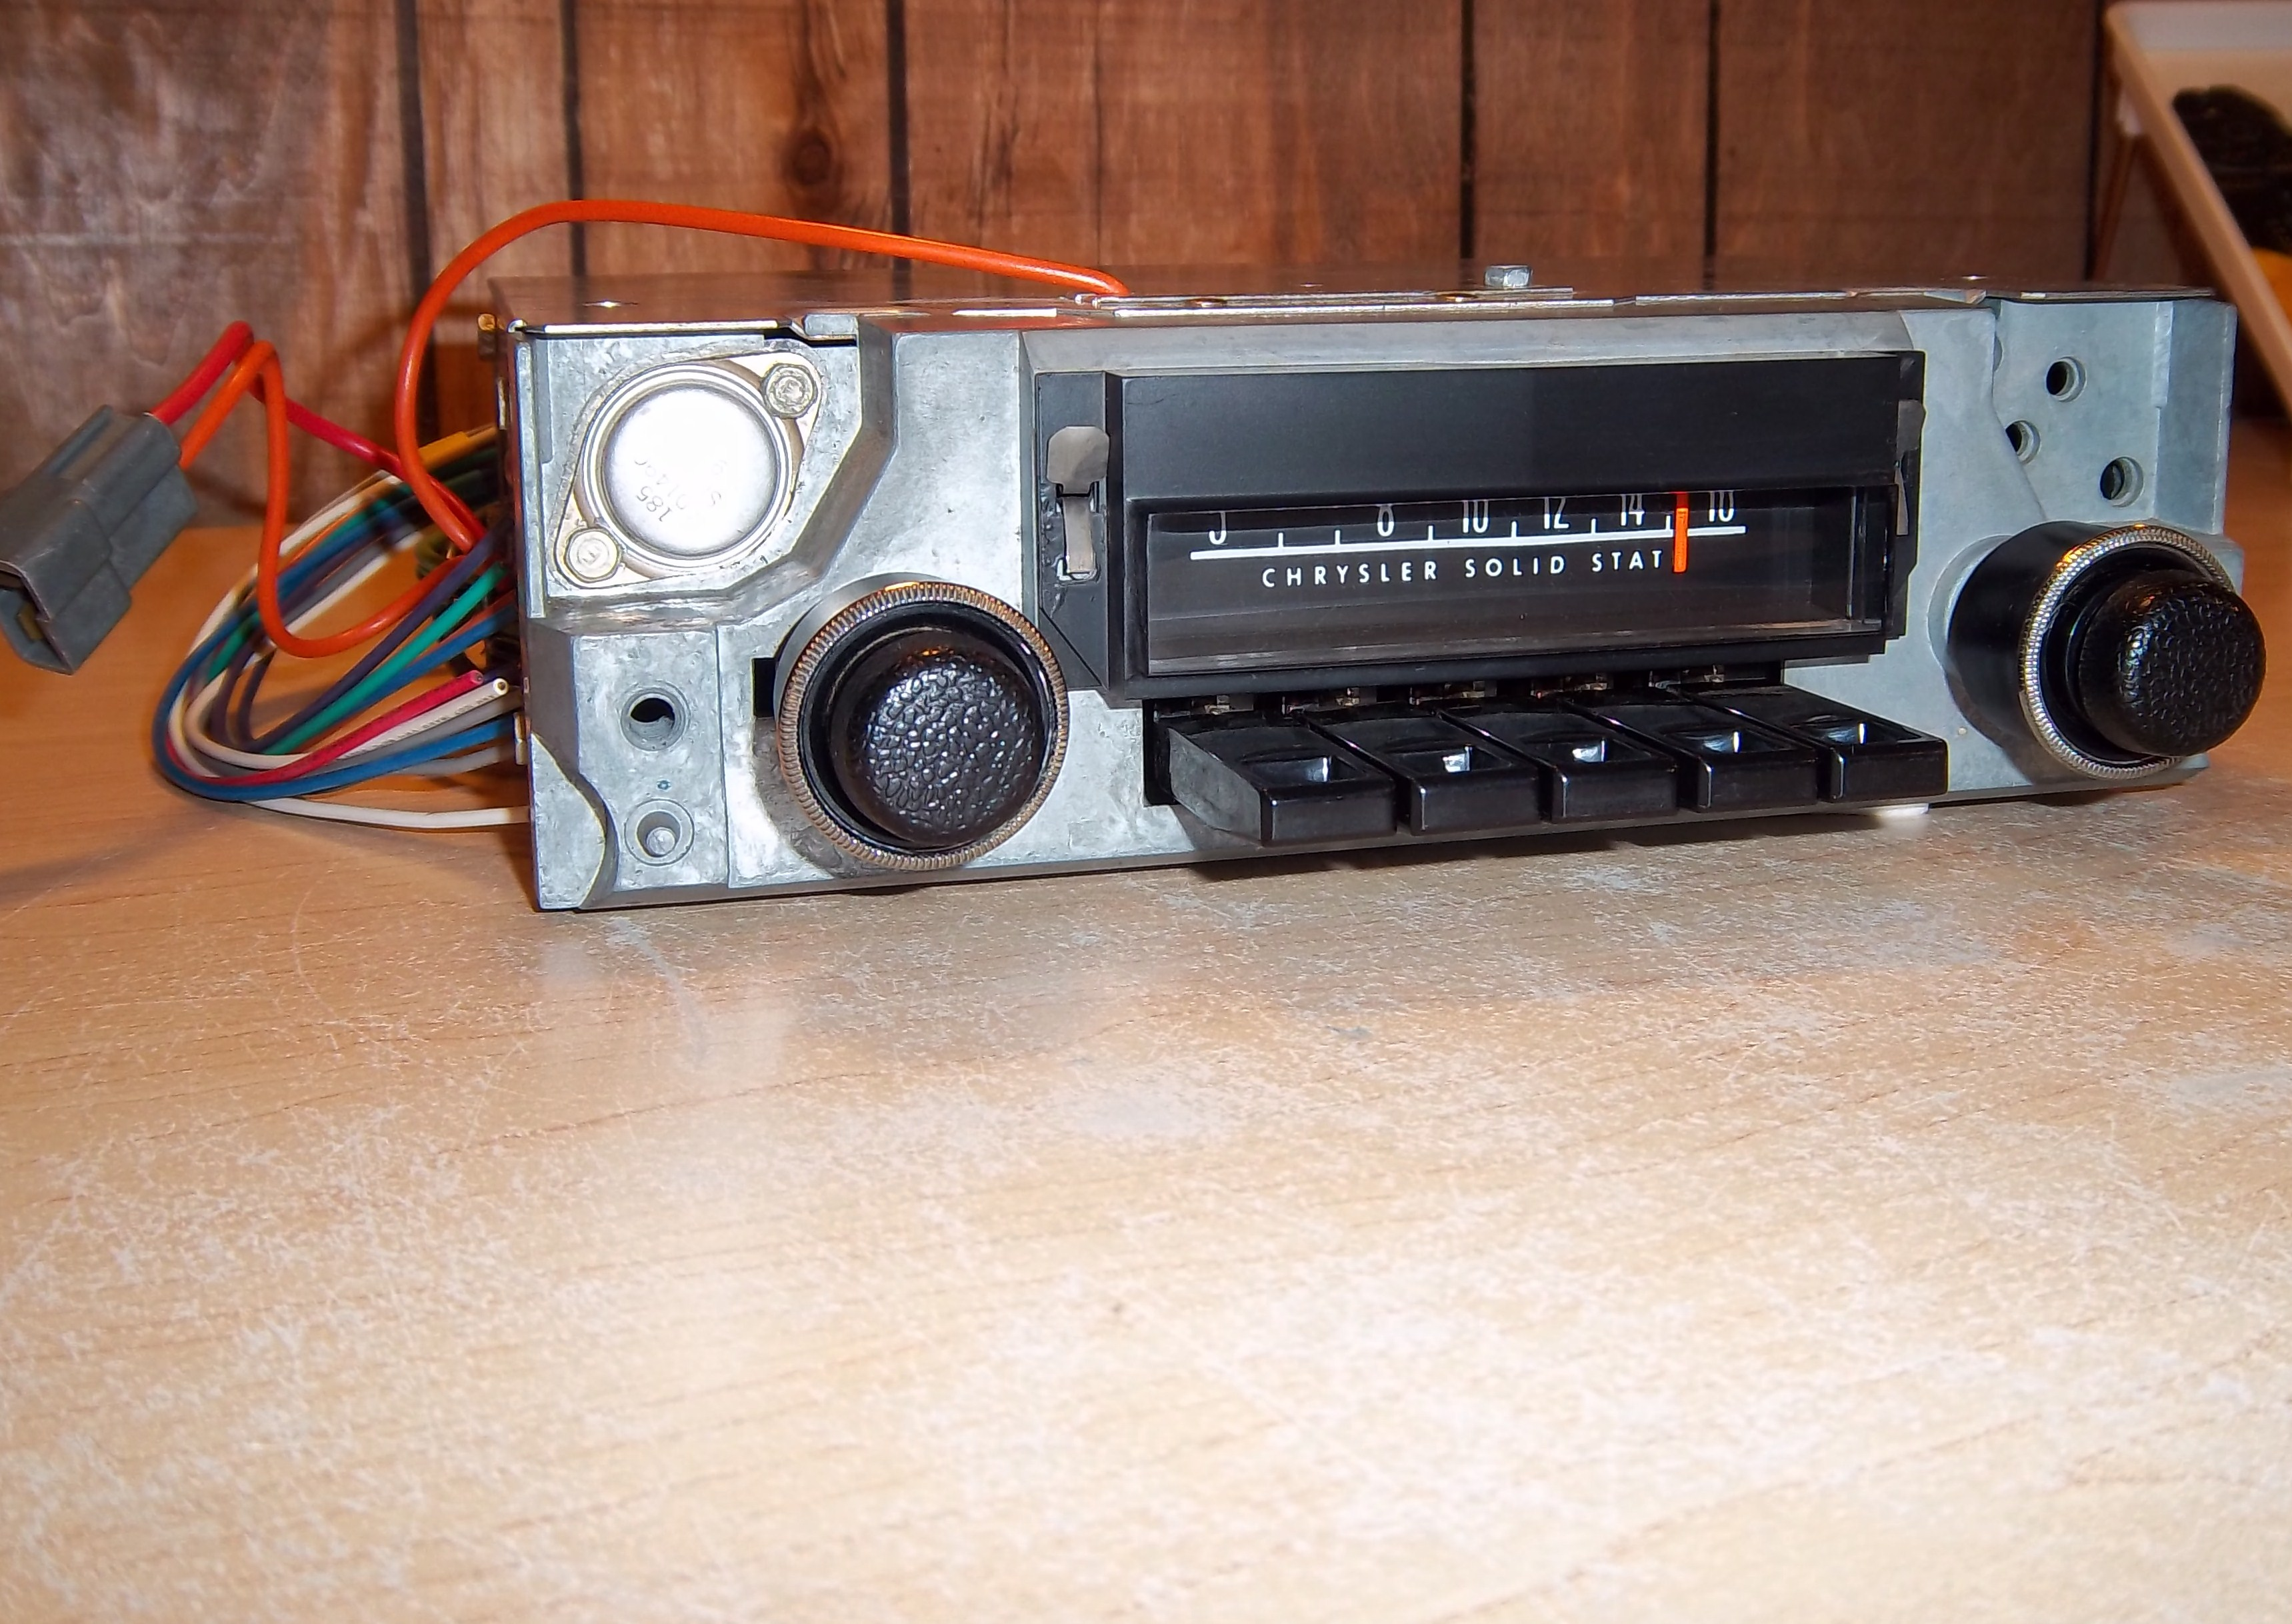 FM CONVERSIONS and MP3 Jack installations